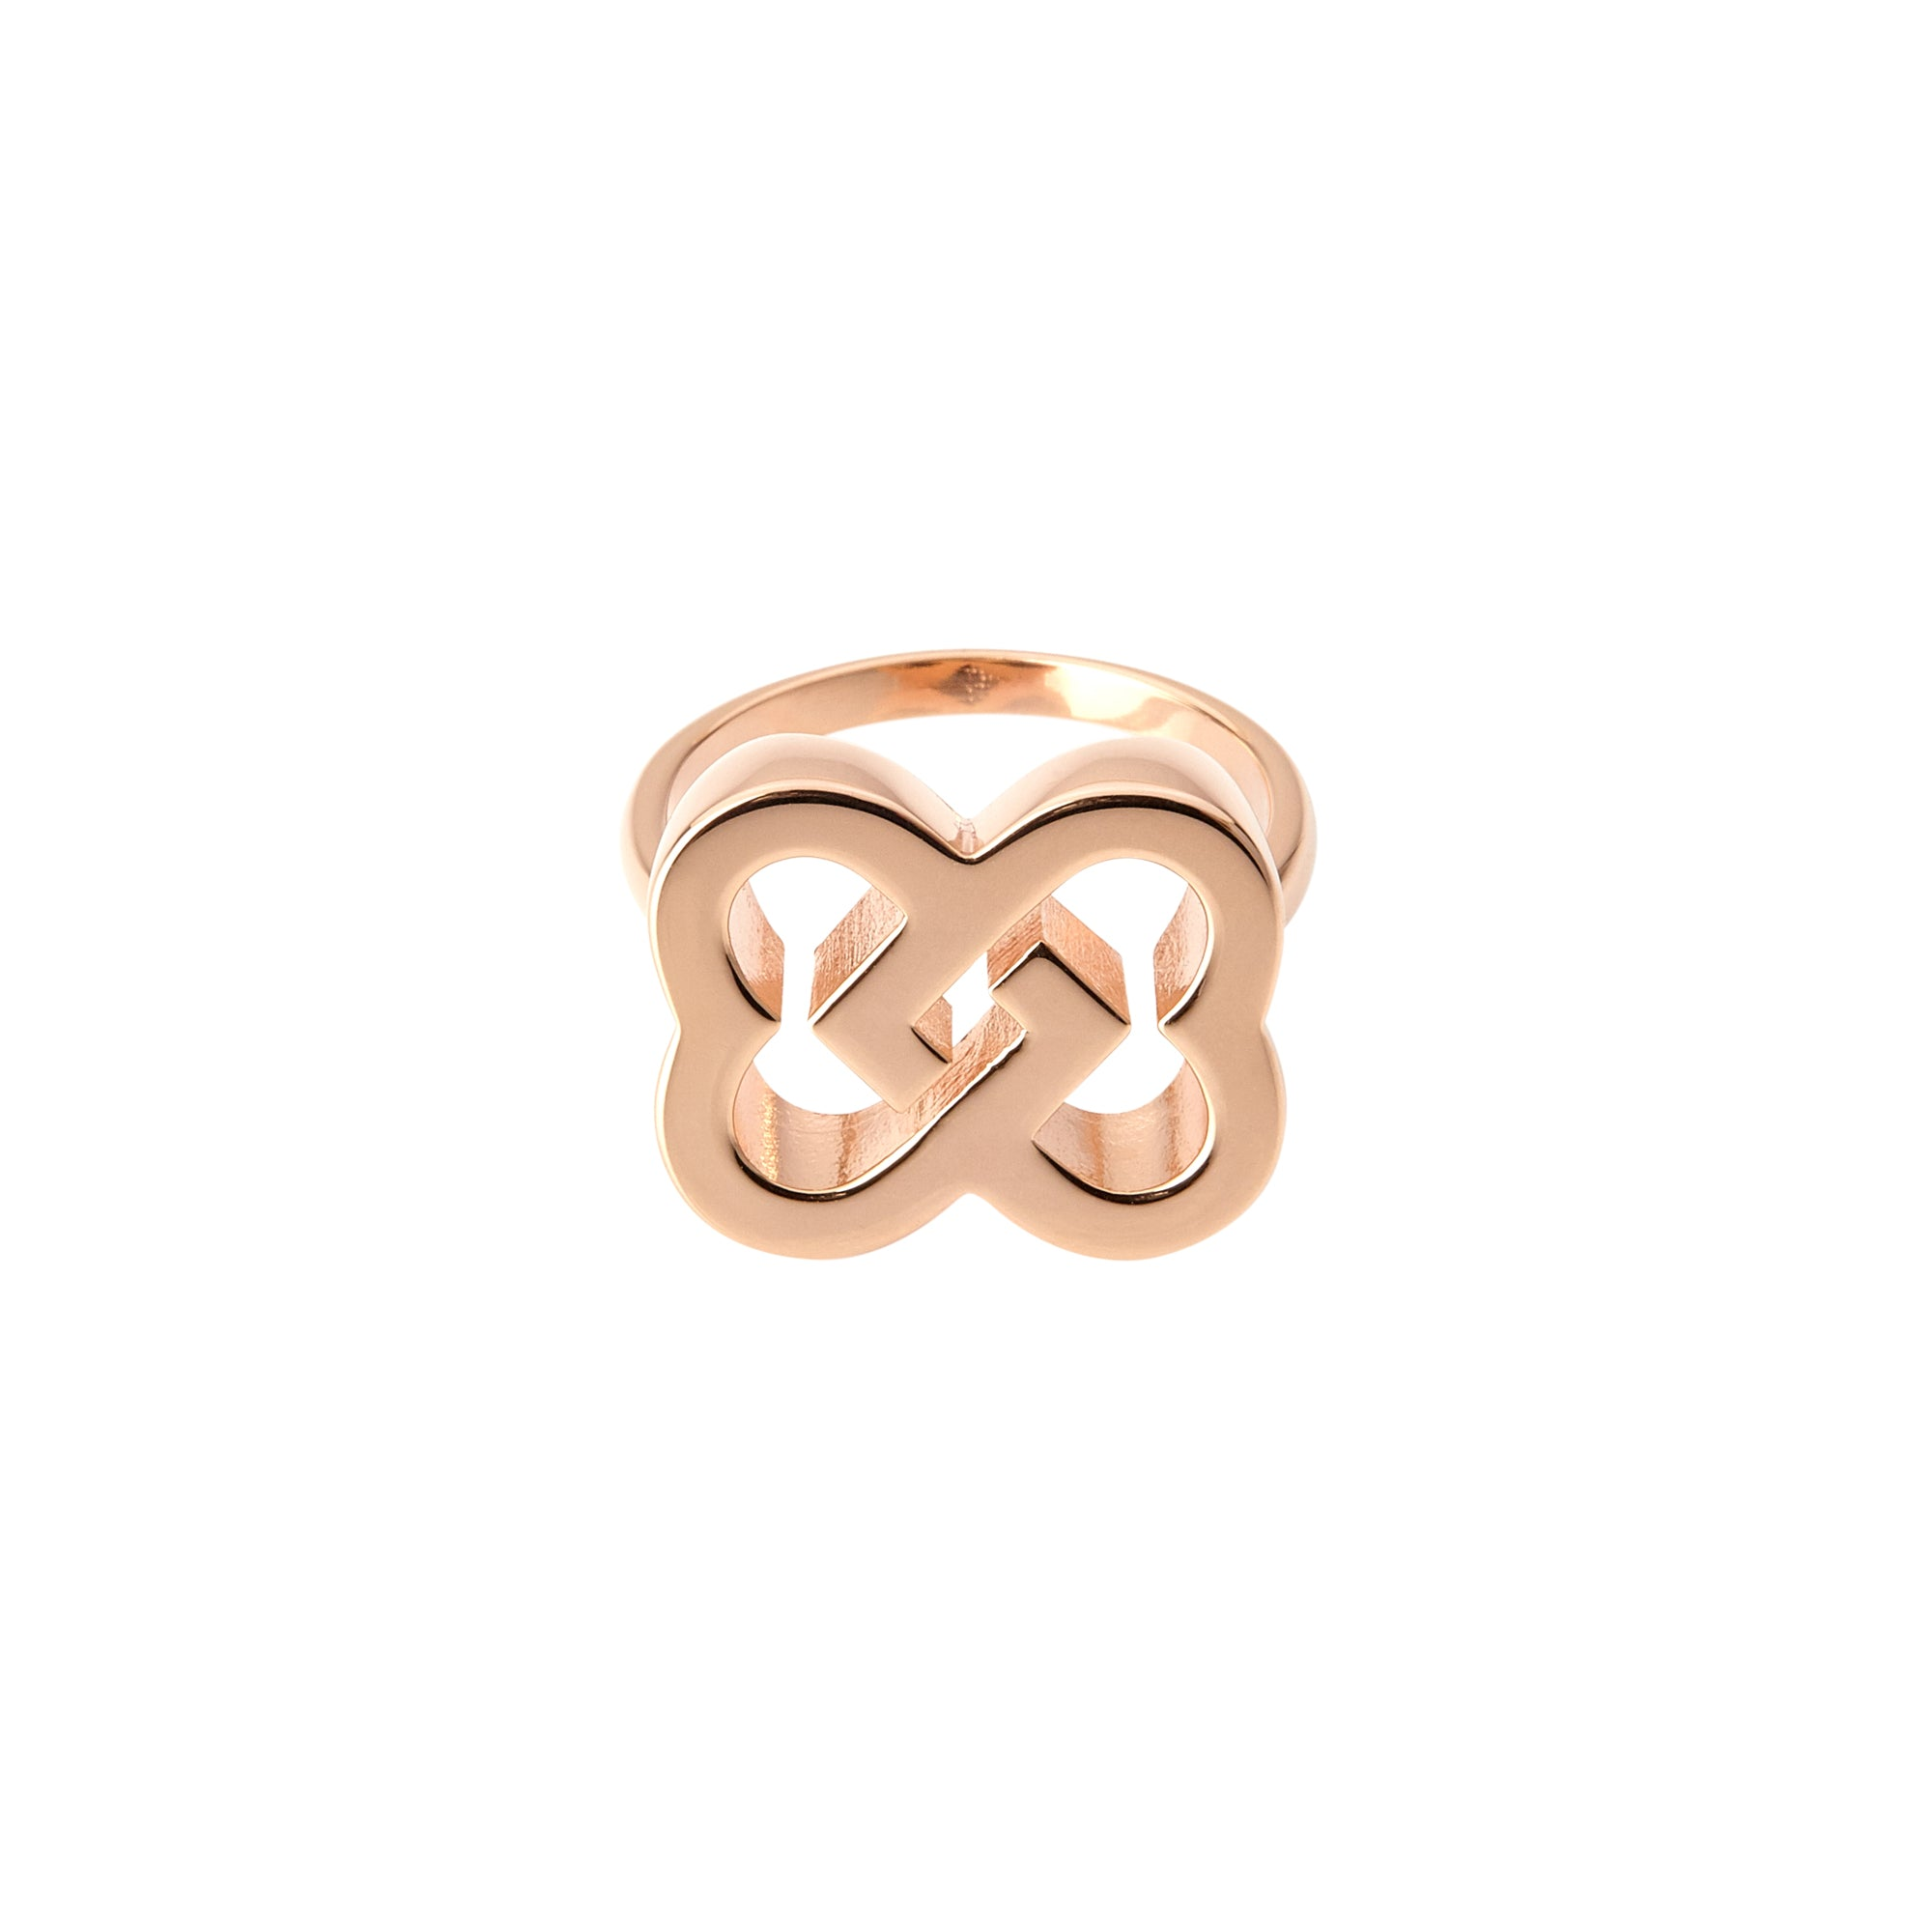 Little Love Ring in pink gold